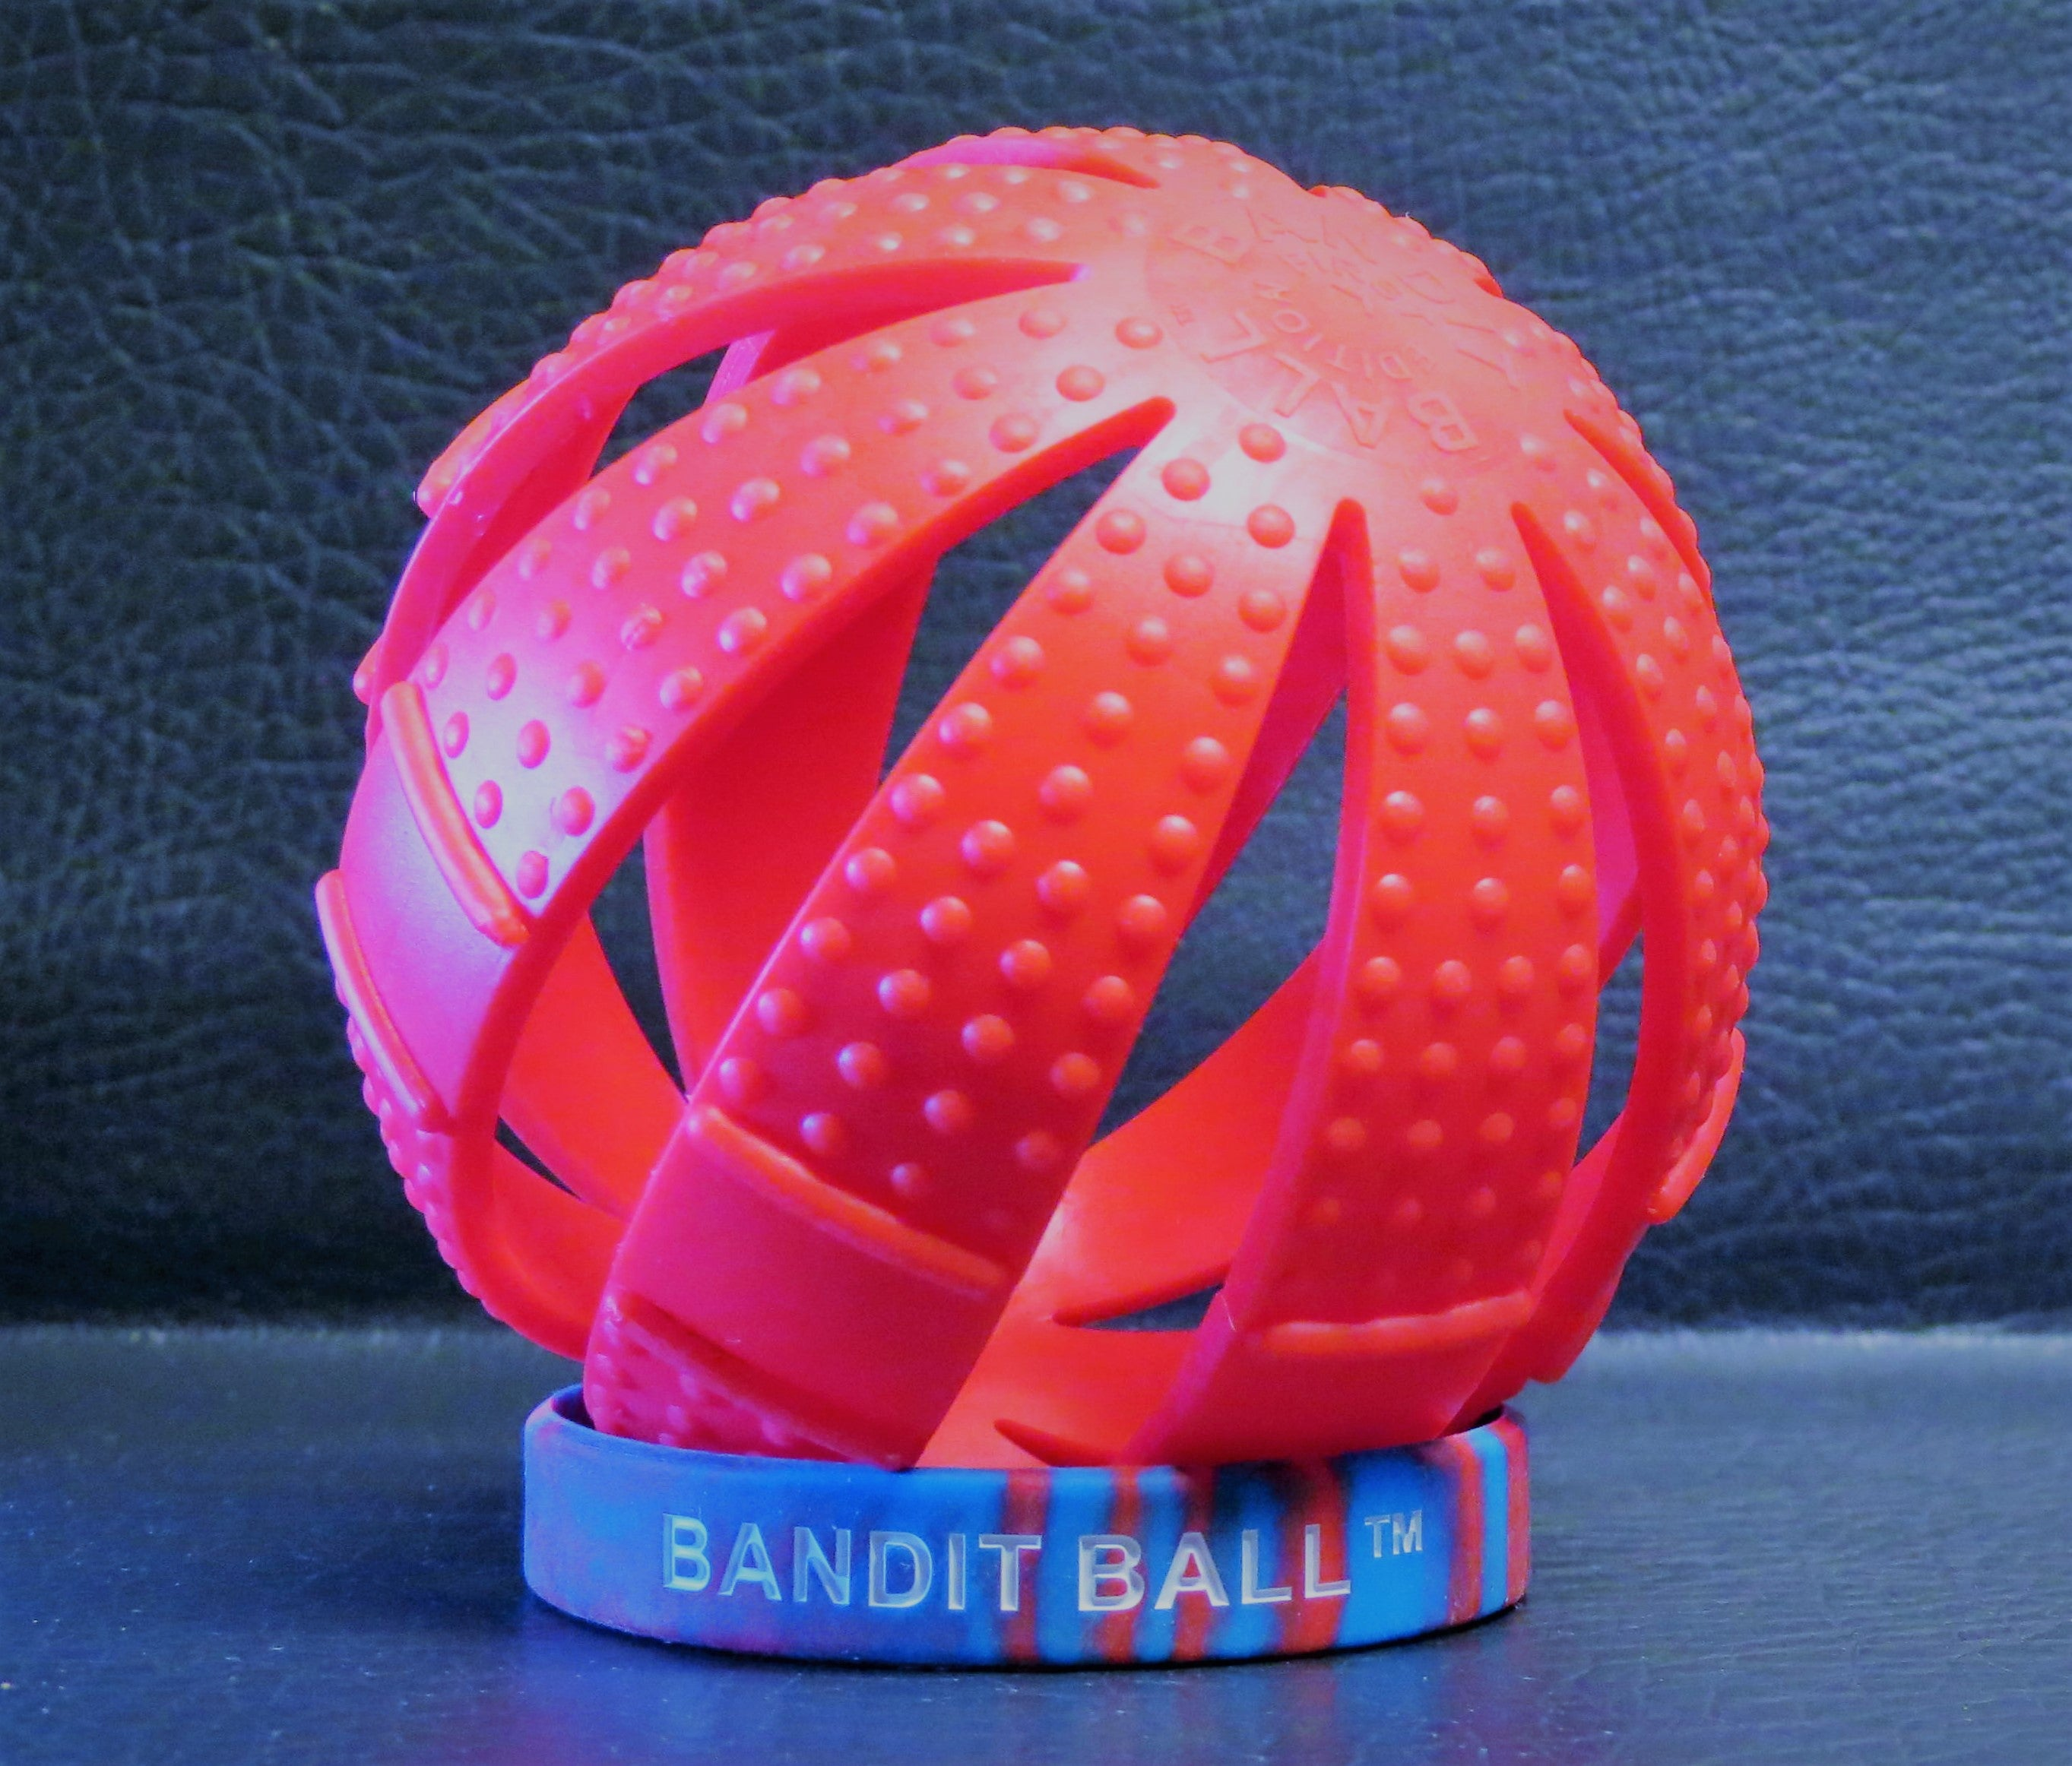 Bandit Ball ... First Edition Red